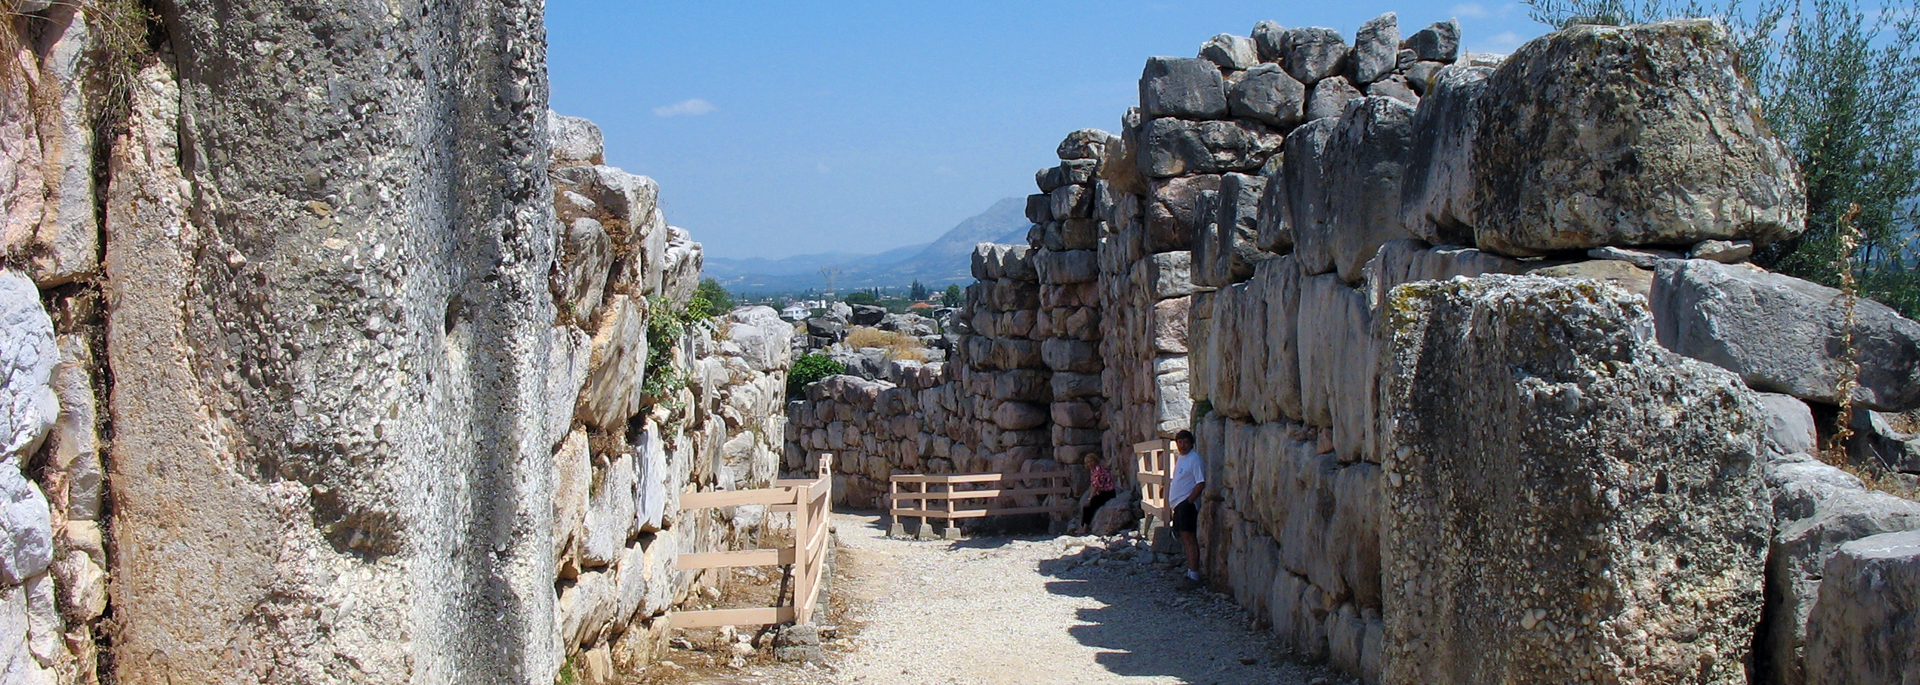 Entrance to Ancient Tiryns